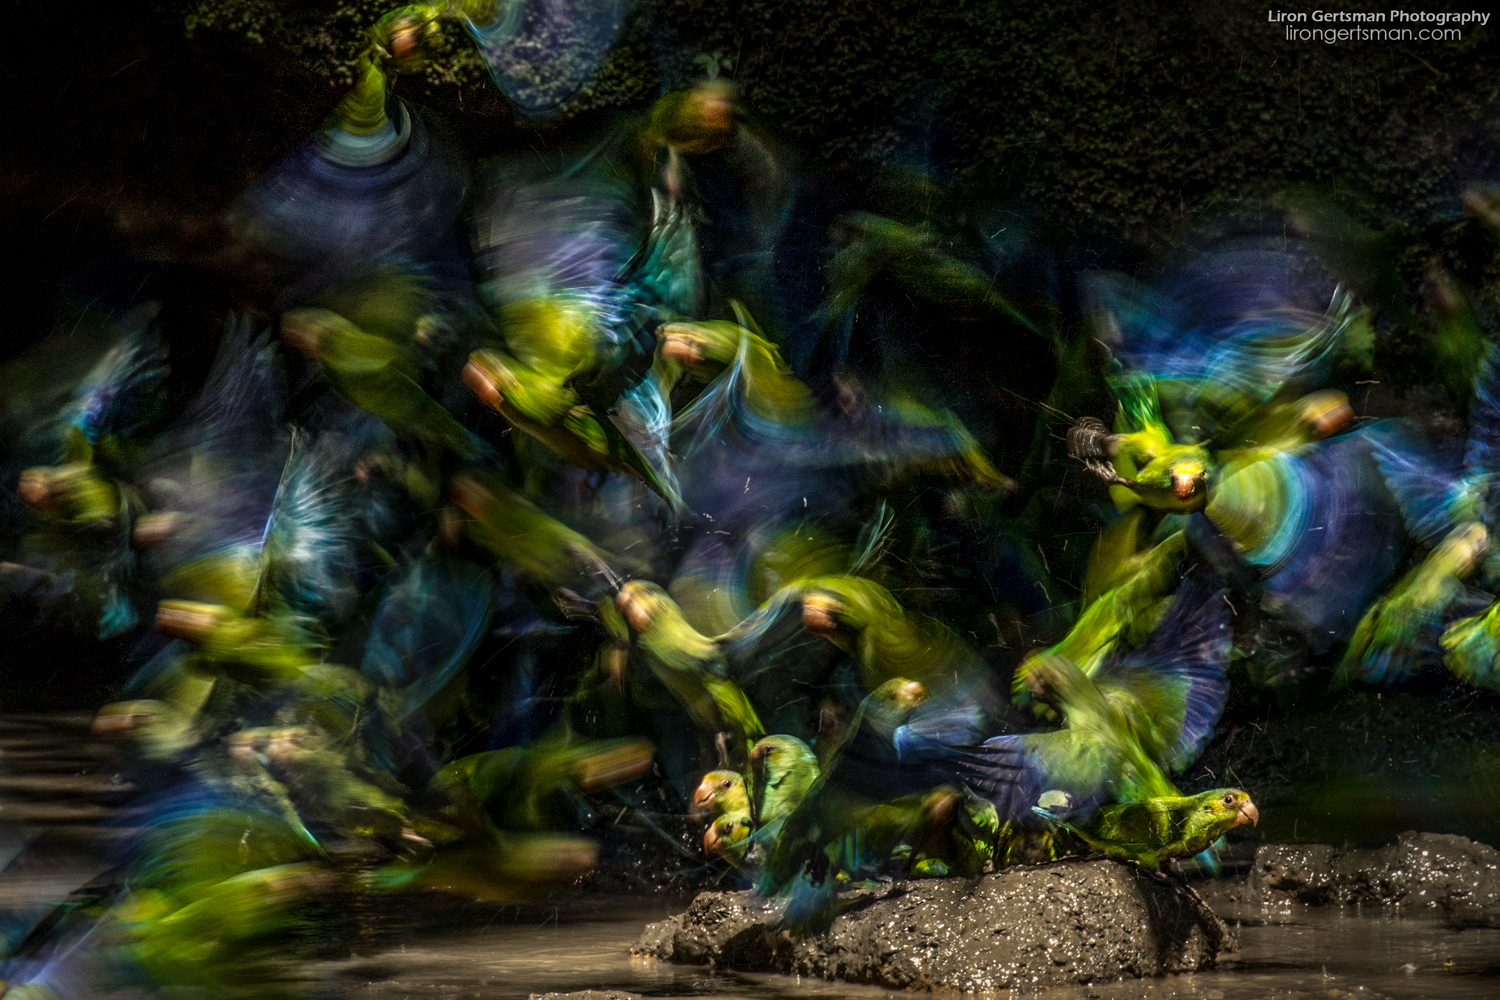 Chaos ensues as hundreds of Cobalt-winged Parakeets suddenly take off in a frenzy, creating a blend of incredible blue and green hues.